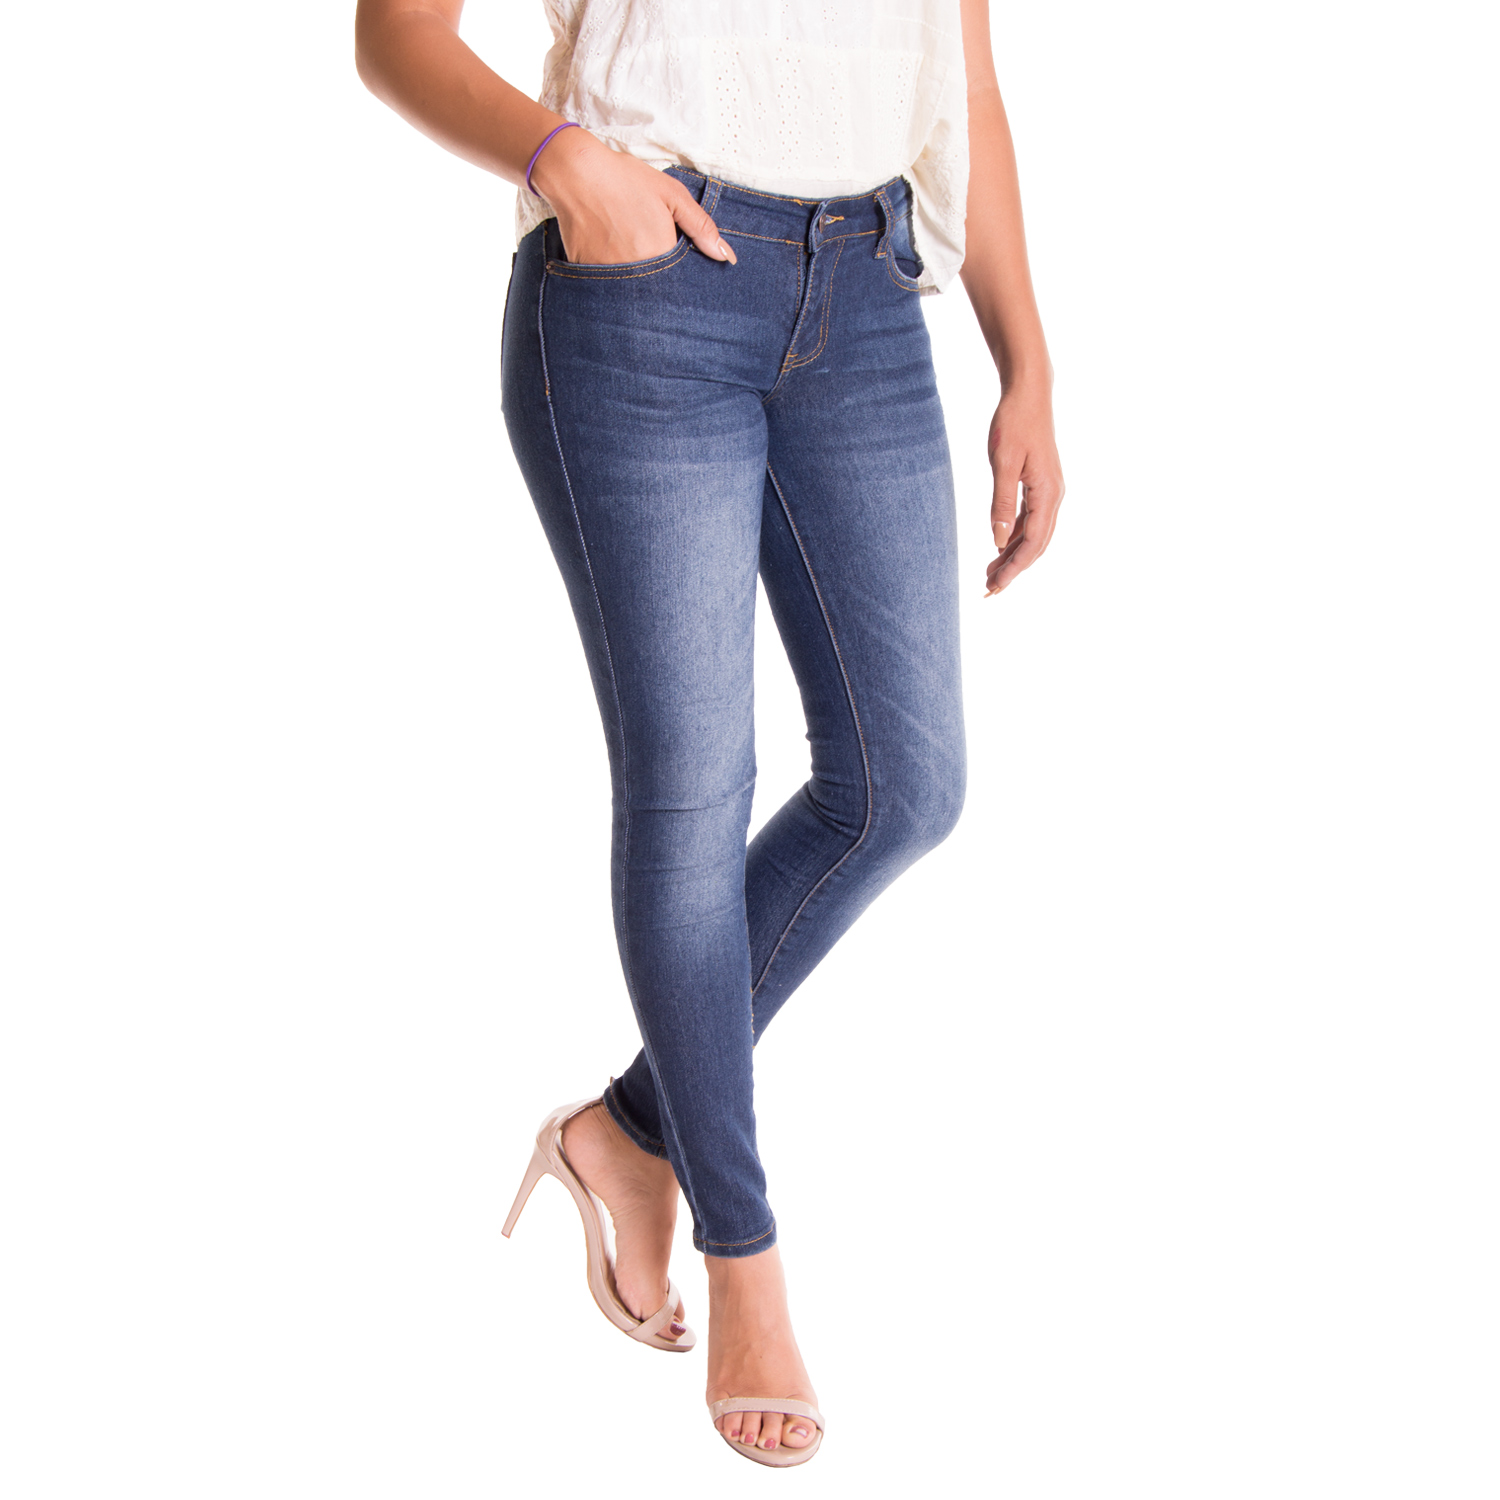 Whether you're dressing up or dressing down, jeans are a versatile item that can easily create a great outfit. Looking for a new pair of jeans? If you've got classic style, find jeans with timeless designs that work for any occasion. Straight leg jeans are not too loose and not too tight for the perfect relaxed fit.